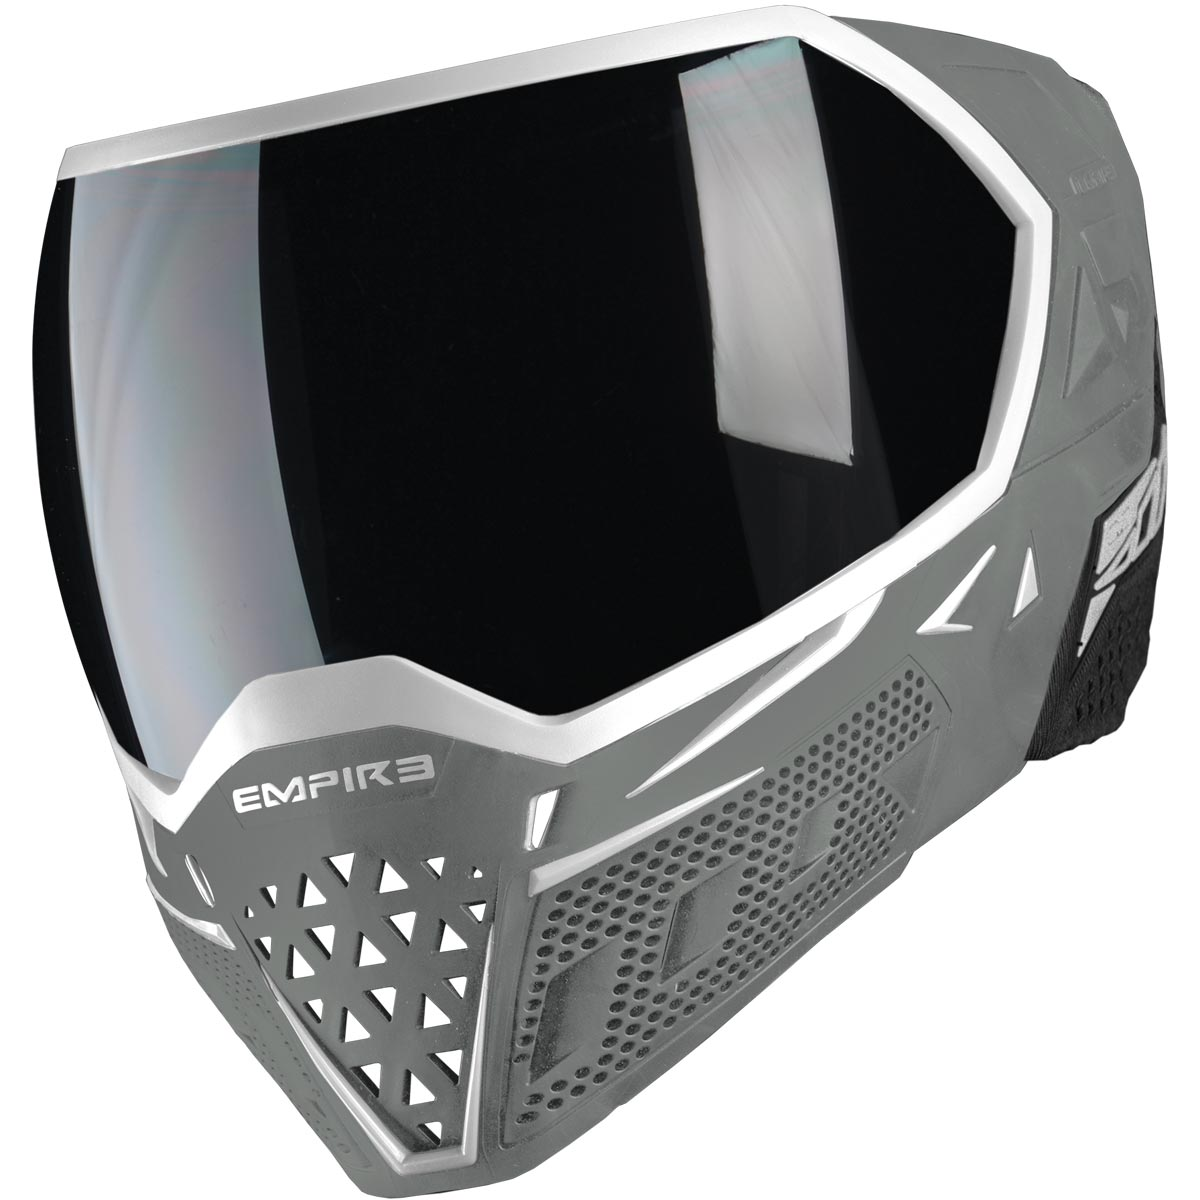 Empire Evs Paintball Mask White Grey With Extra Lens